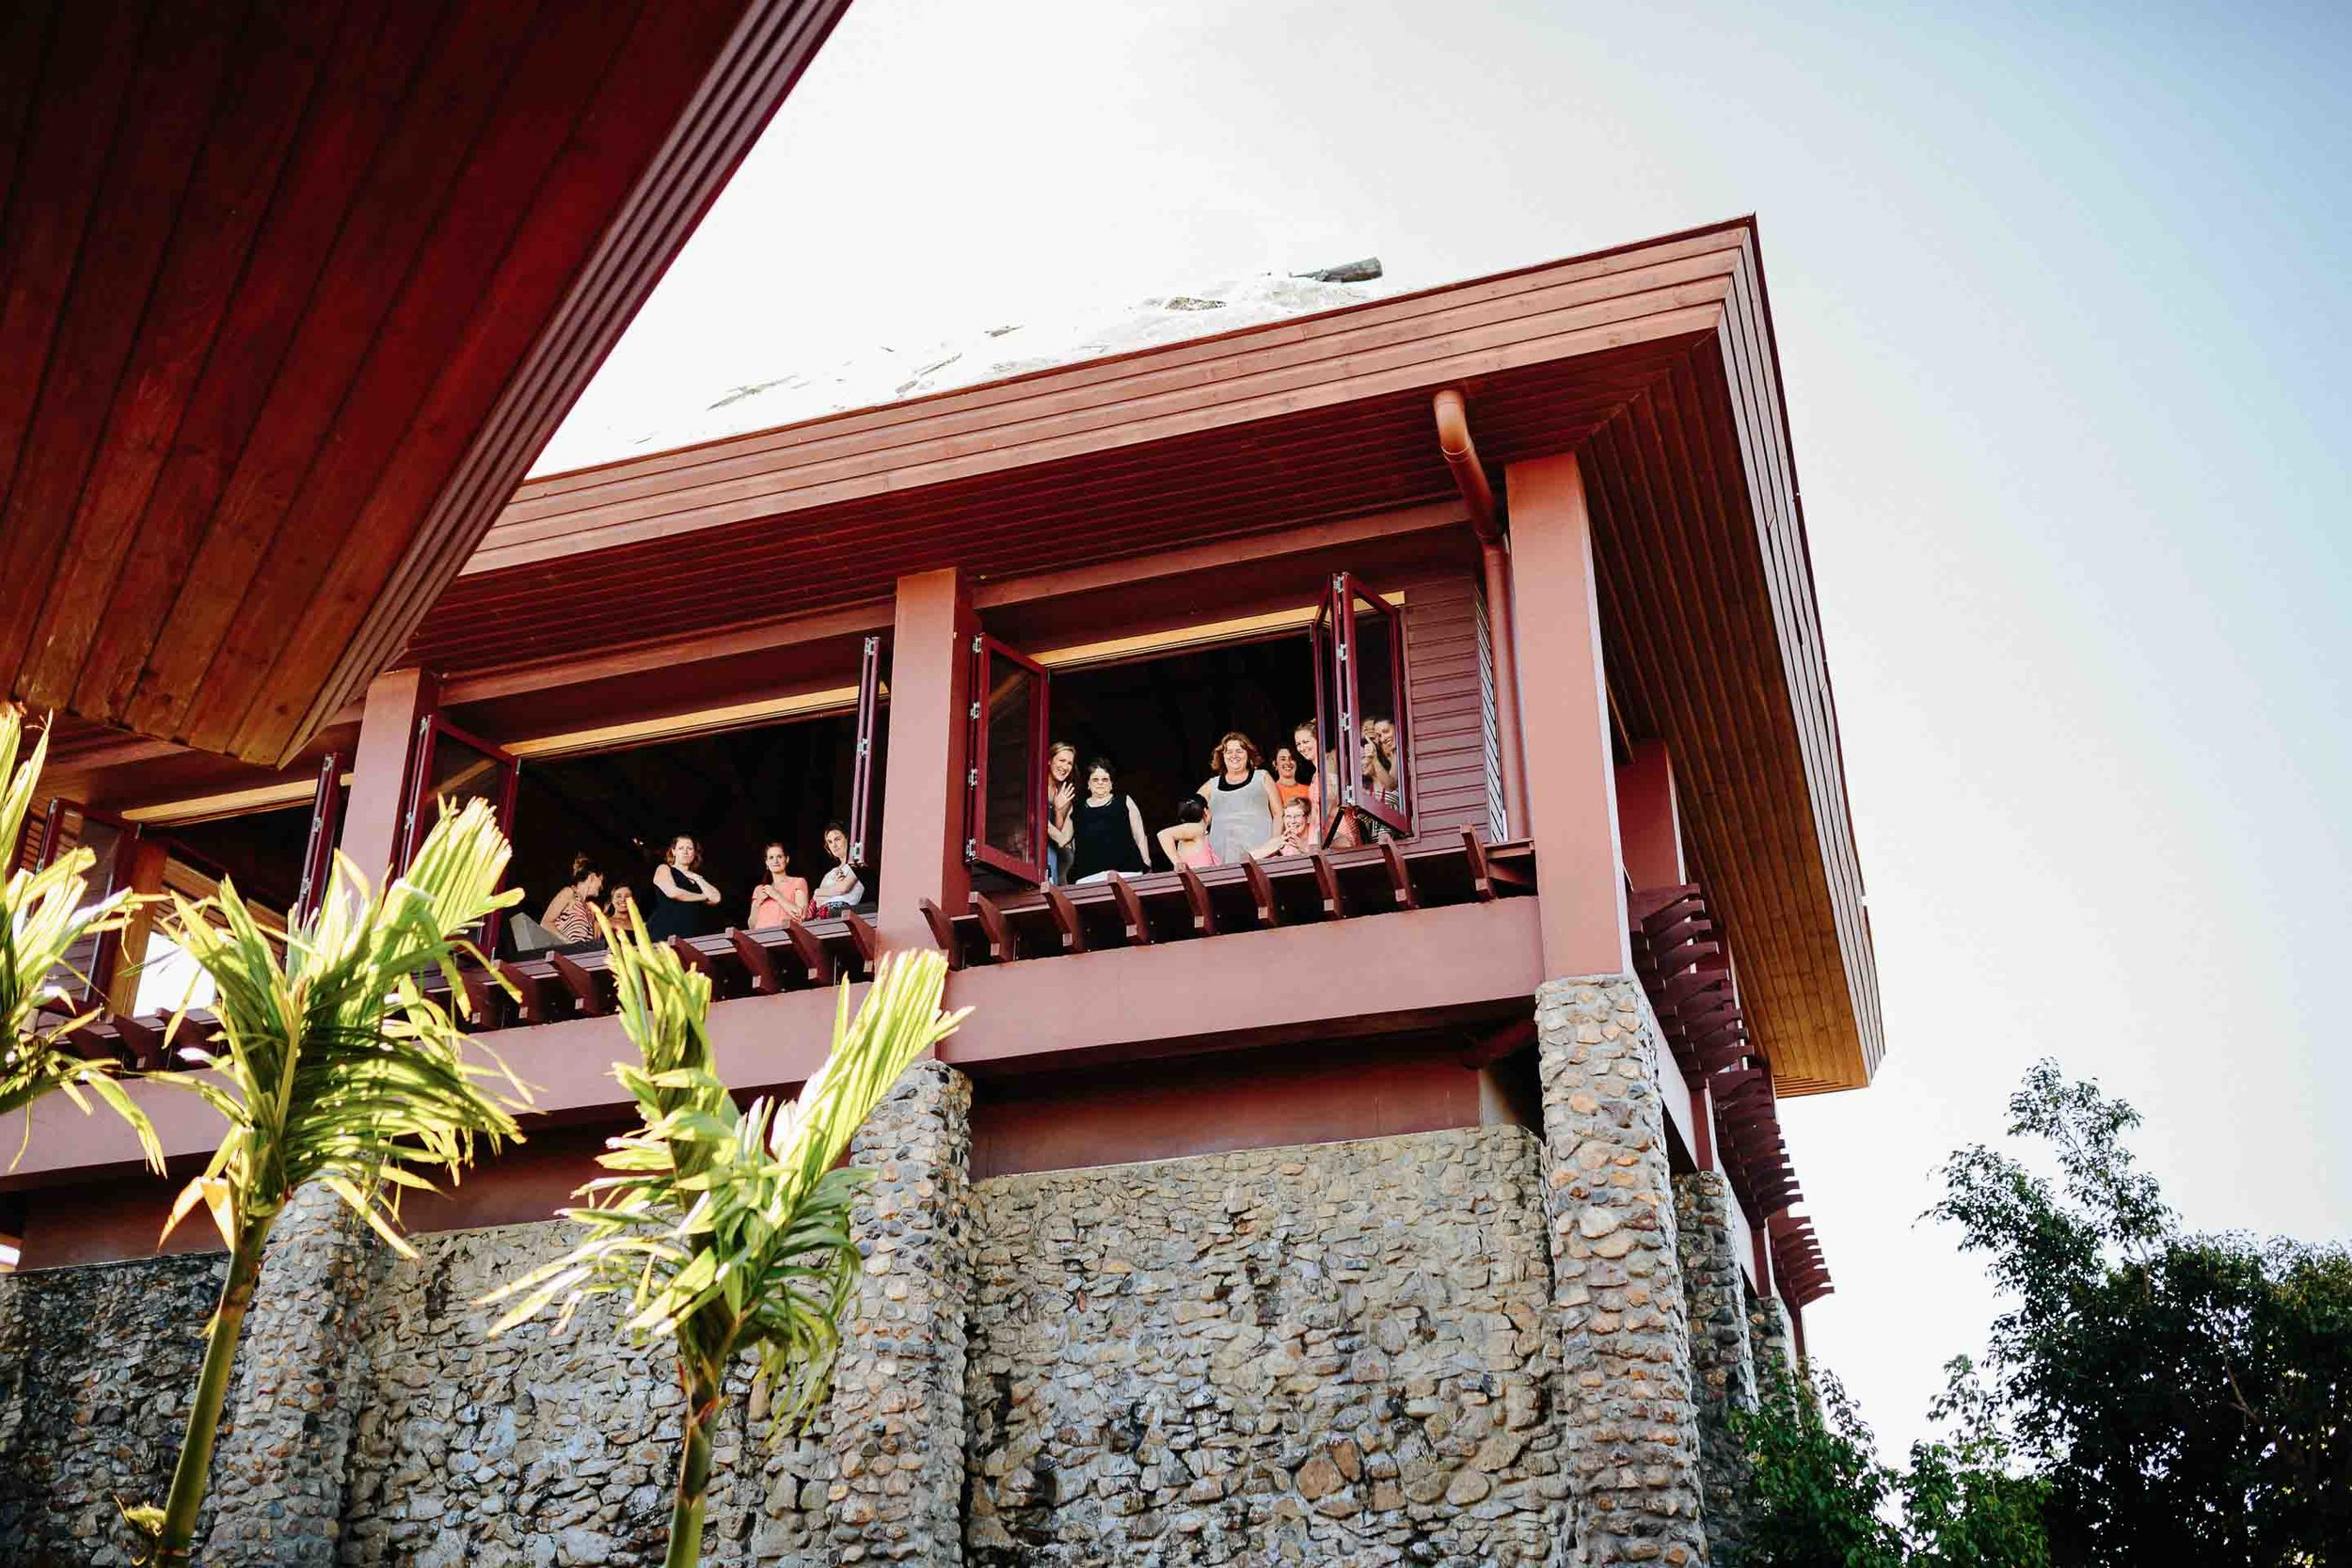 Guests of the Kalokalo Hilltop Bar watching the brides entrance